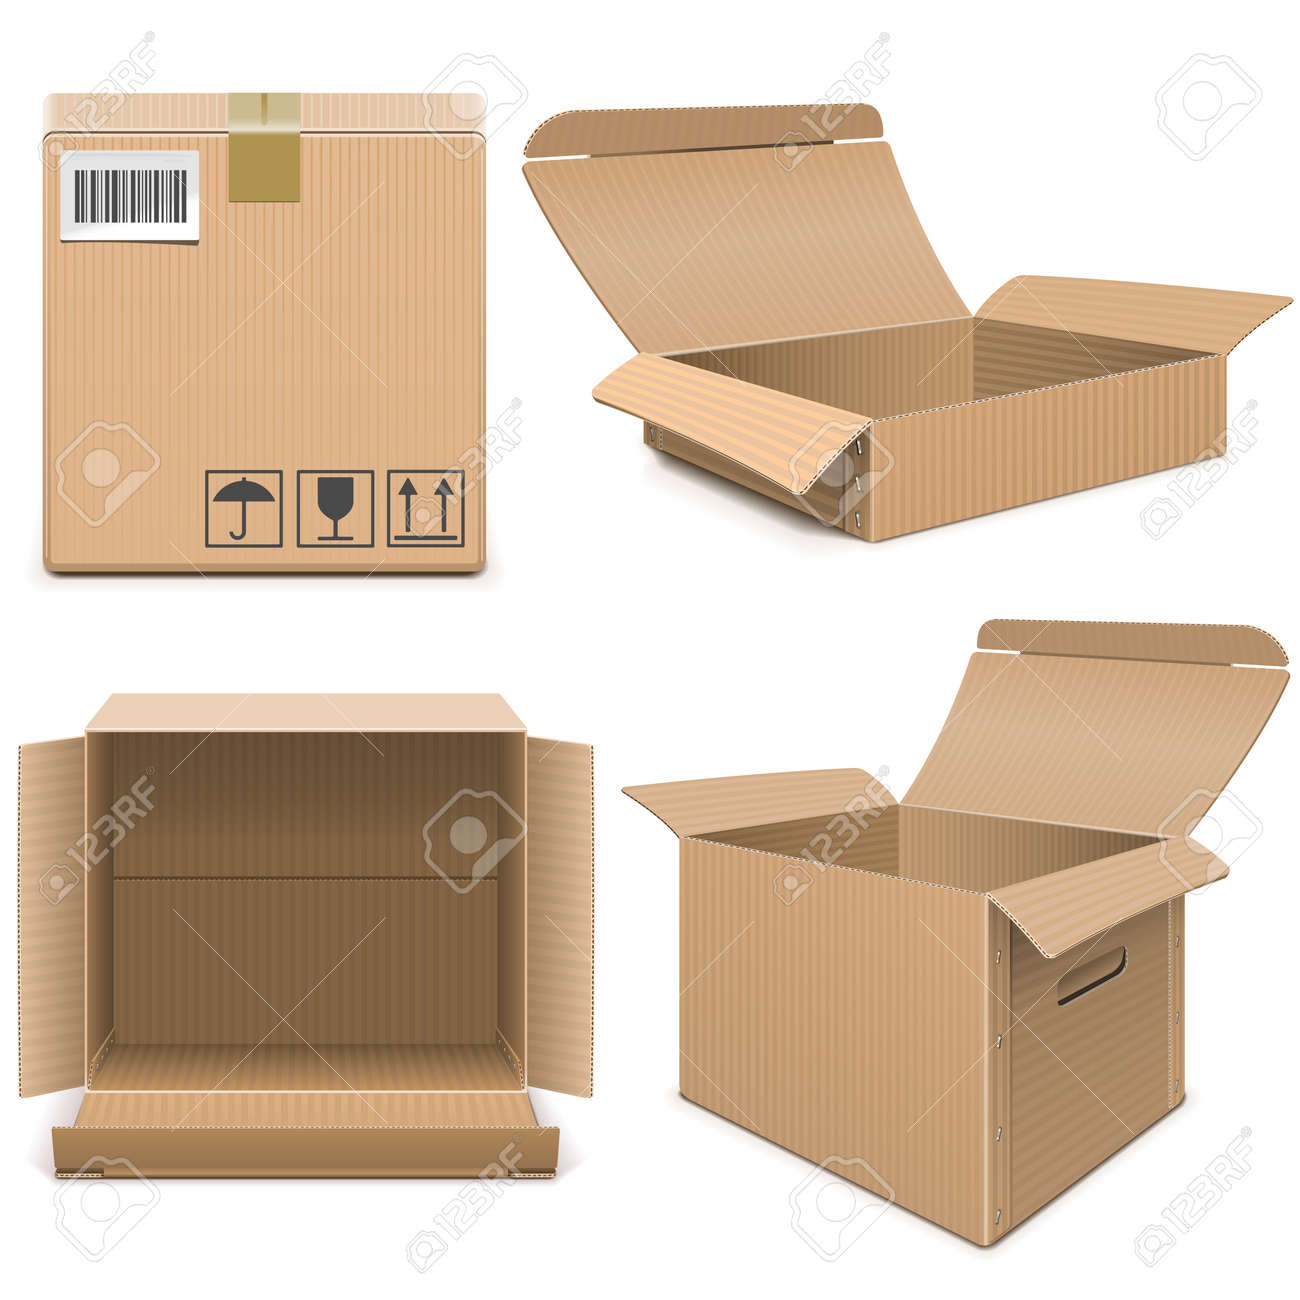 Vector Empty Carton Boxes isolated on white background - 157101681